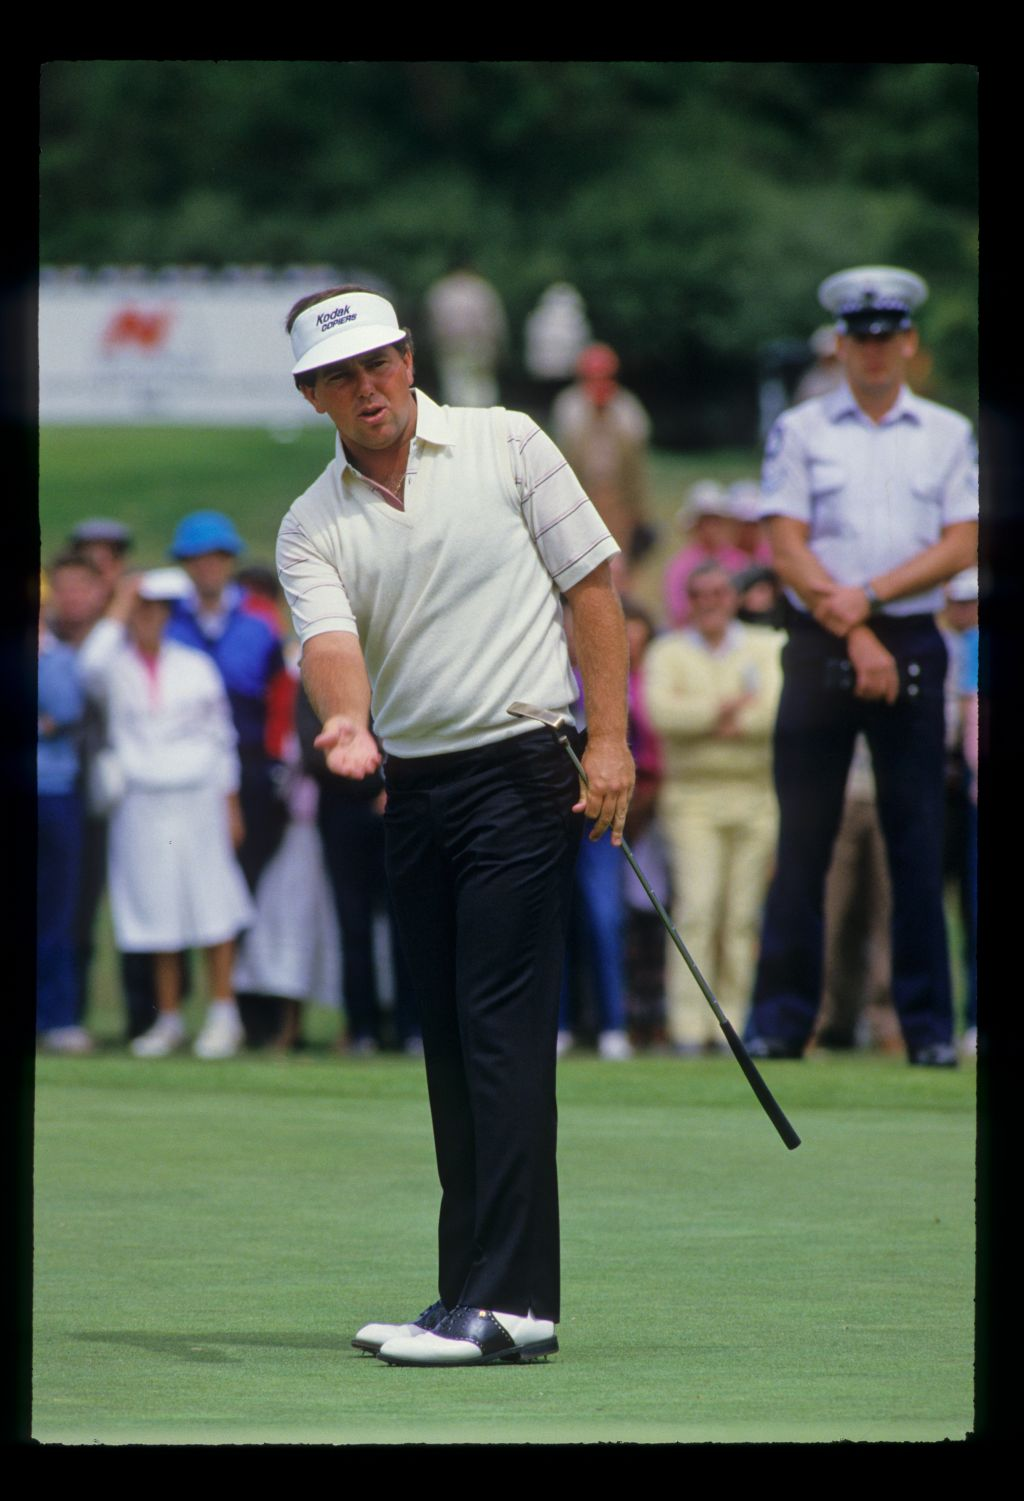 Mark O'Meara reacting to a putt on his way to winning the 1986 Australian Masters